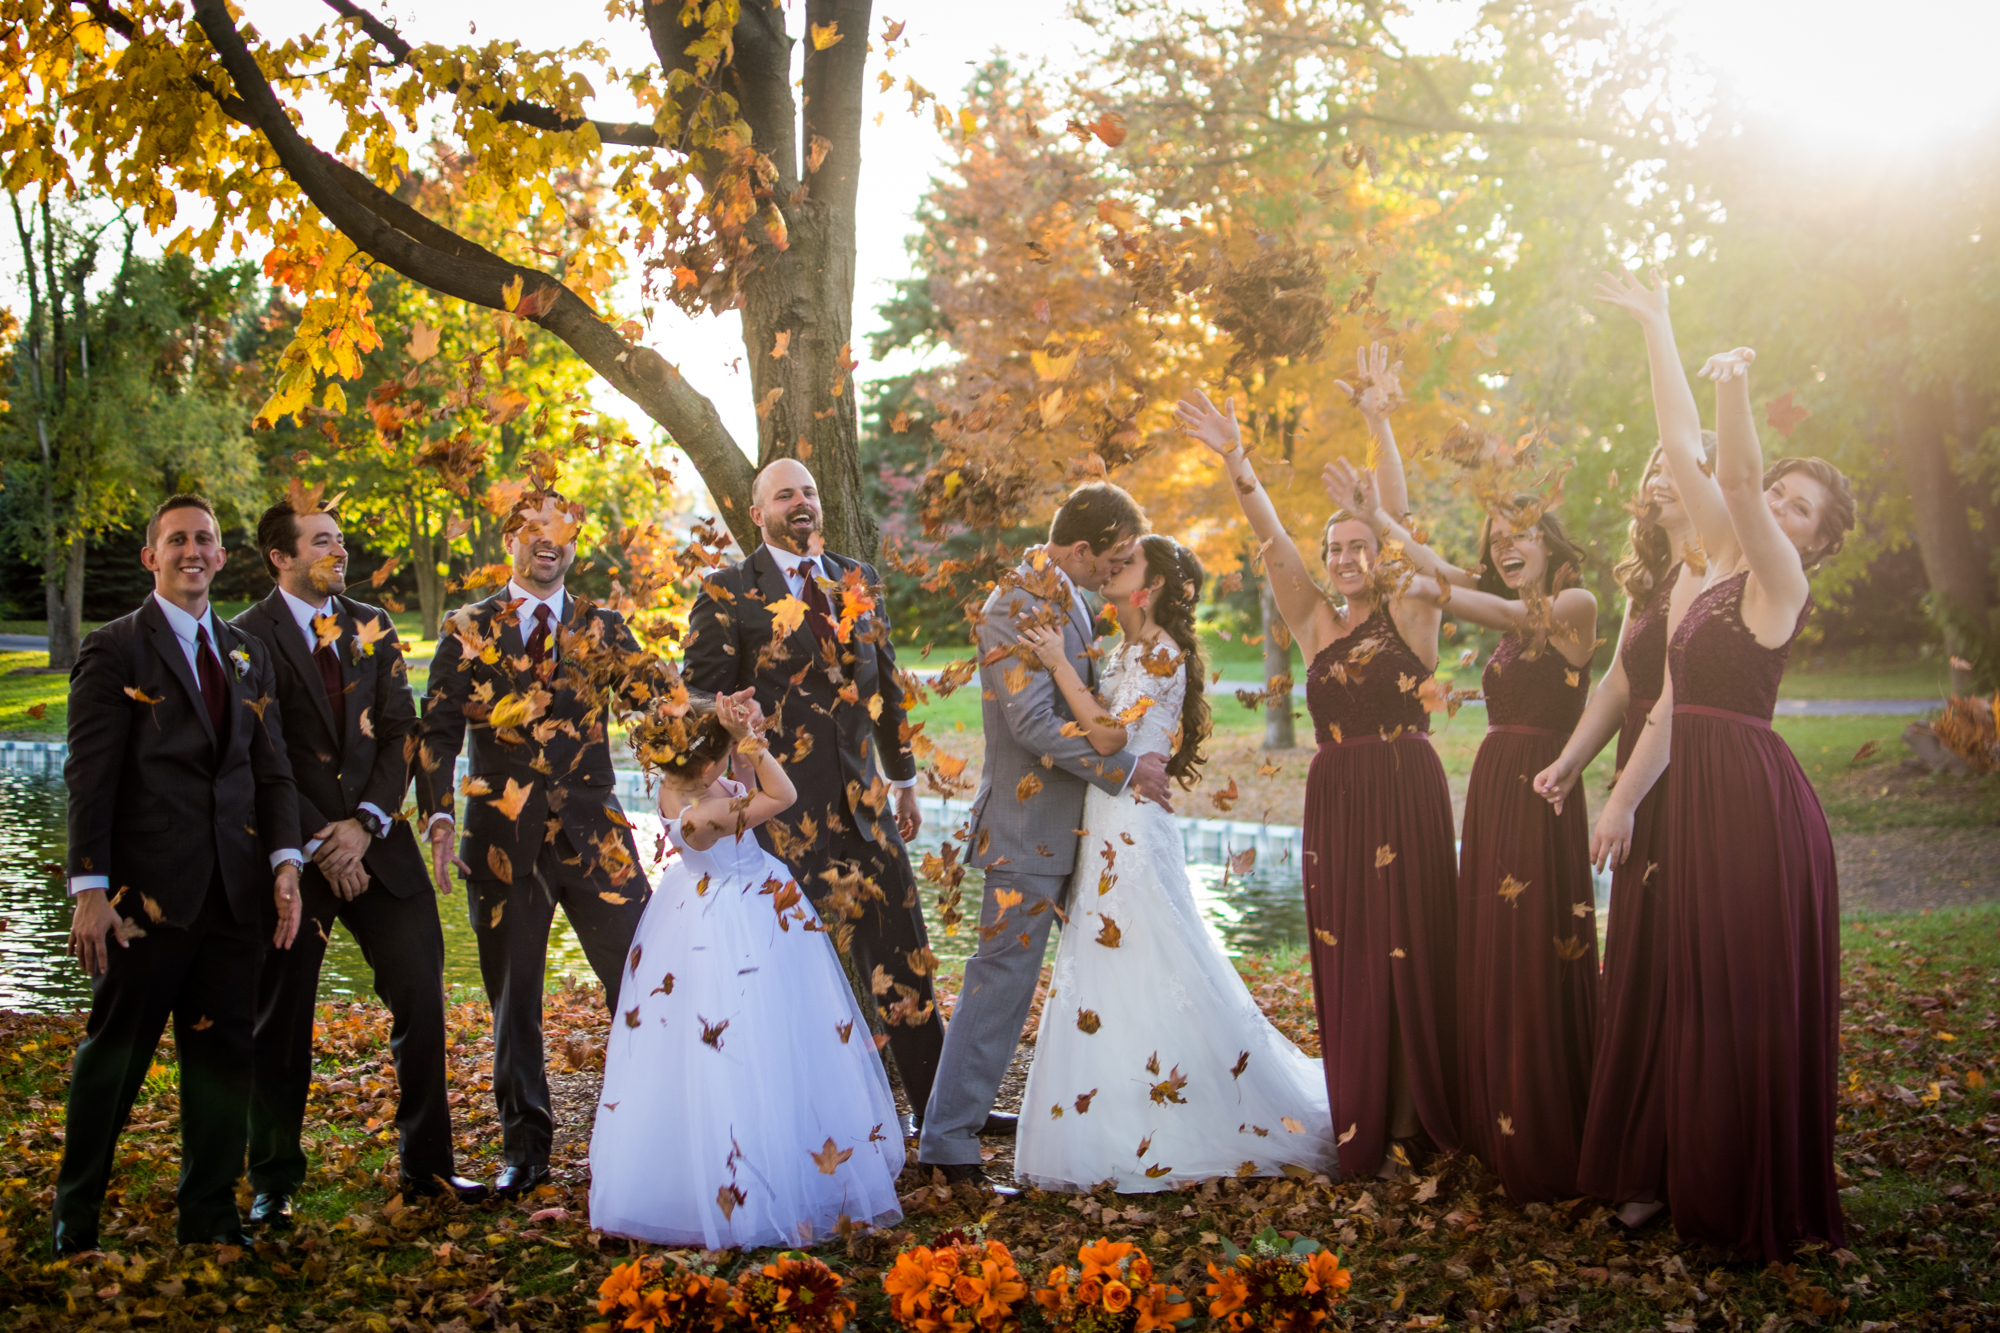 Detriot Wedding Photographer 18.jpg